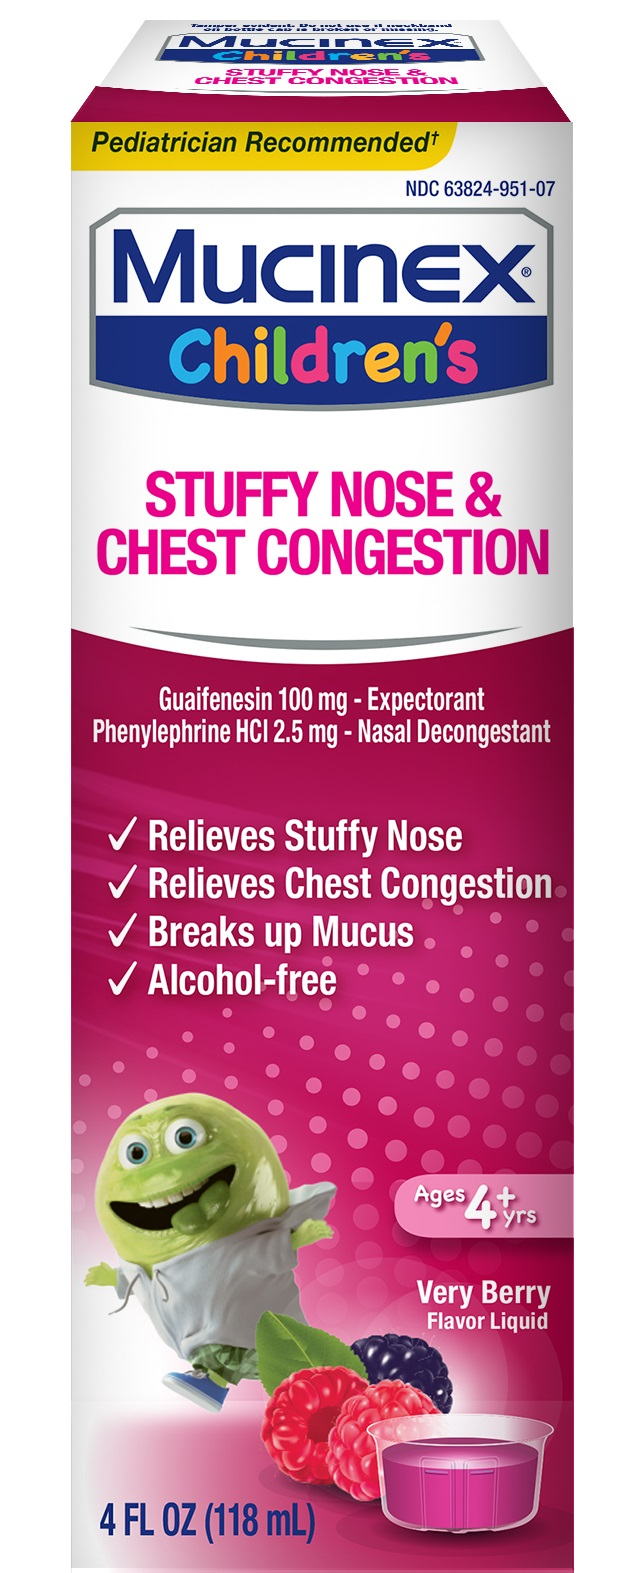 MUCINEX® CHILDREN'S Stuffy Nose & Chest Congestion - Very Berry